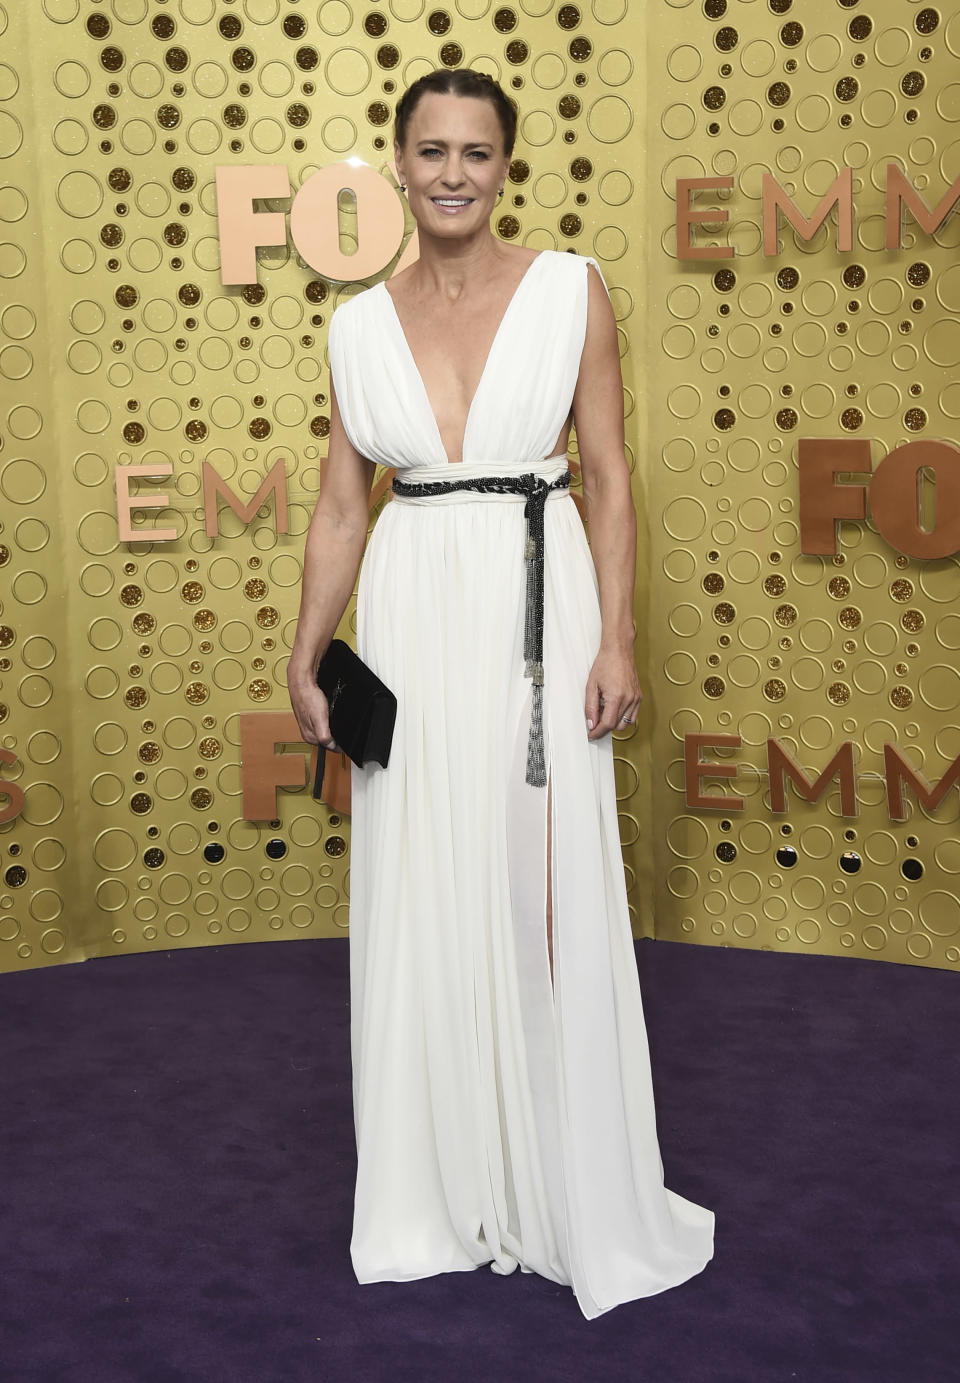 FILE - Robin Wright arrives at the 71st Primetime Emmy Awards on Sept. 22, 2019, in Los Angeles. Wright turns 55 on April 8. (Photo by Jordan Strauss/Invision/AP, File)